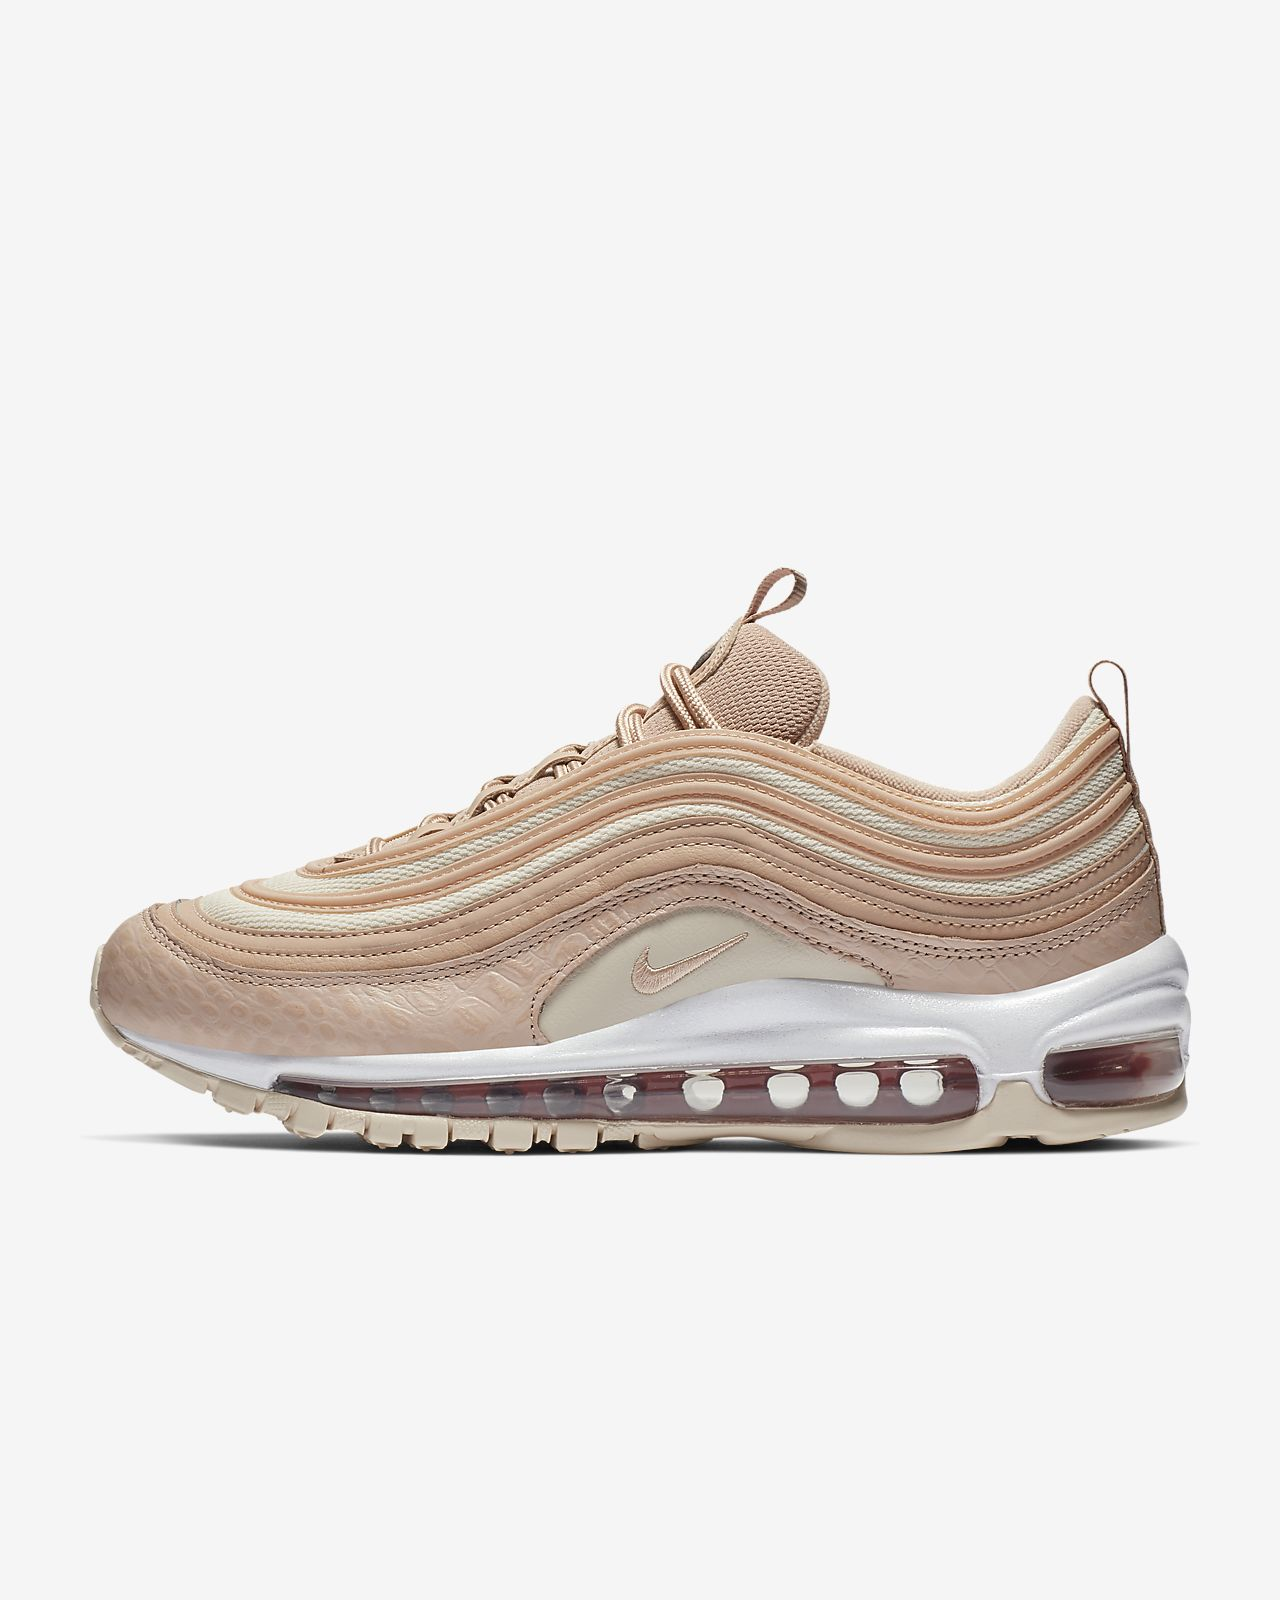 Femme Nike Pour Chaussure Be 97 Lx Air Max HBpZAY